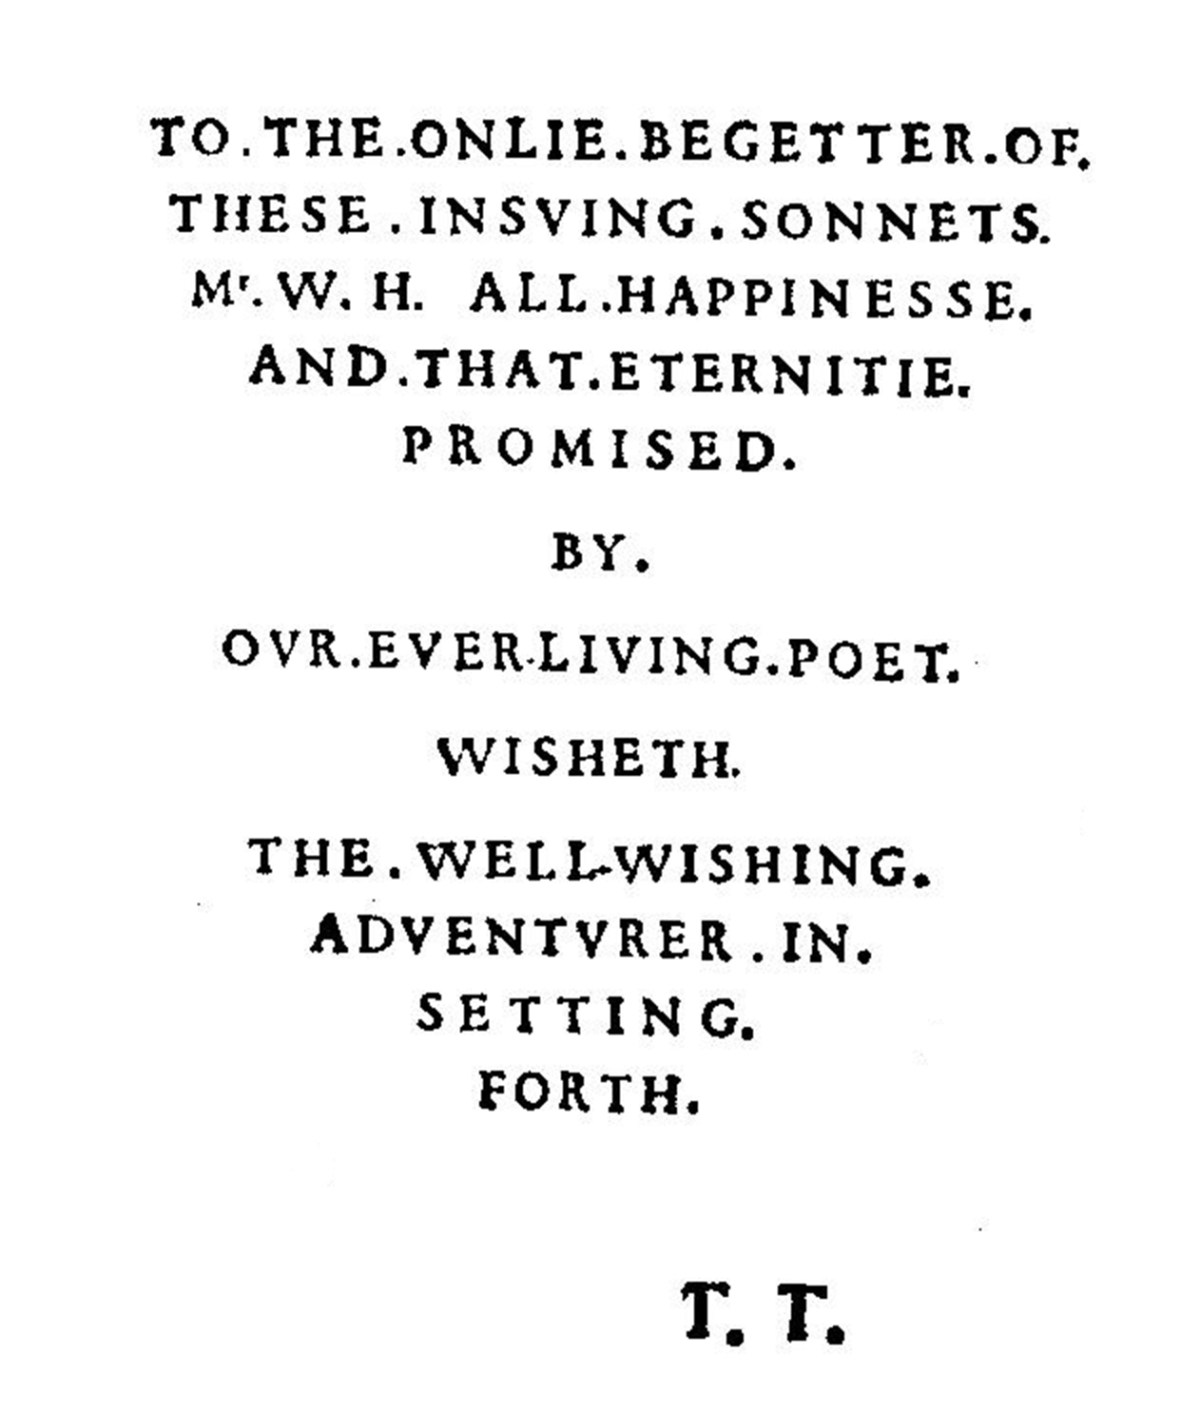 sonnets-frontispiece